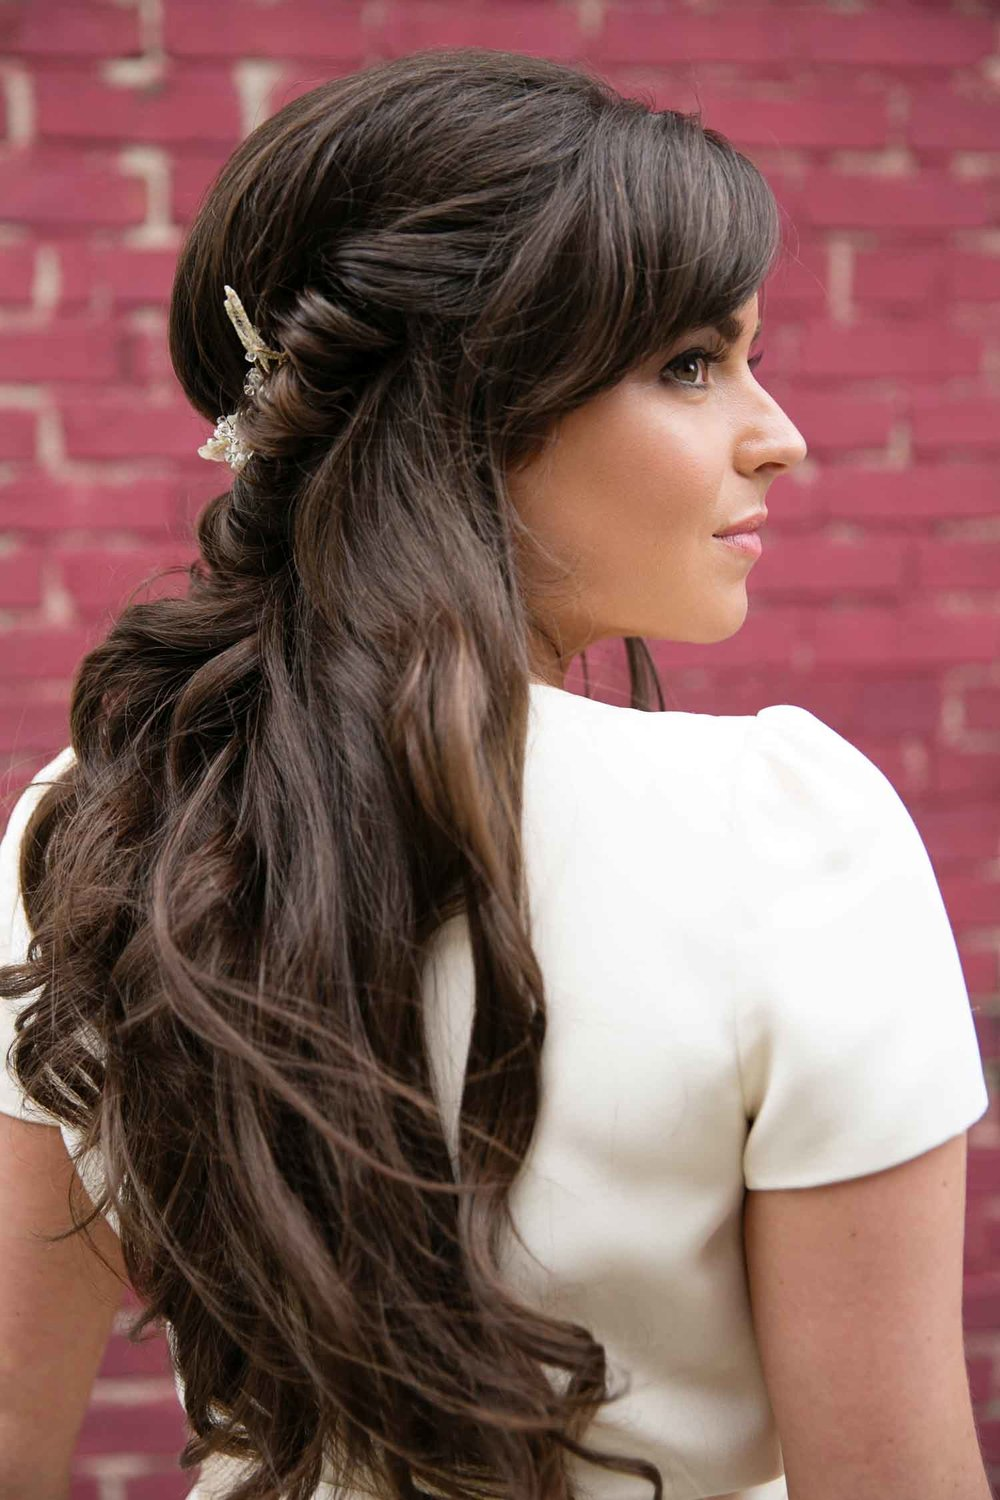 Bridal Hair and Makeup.jpg